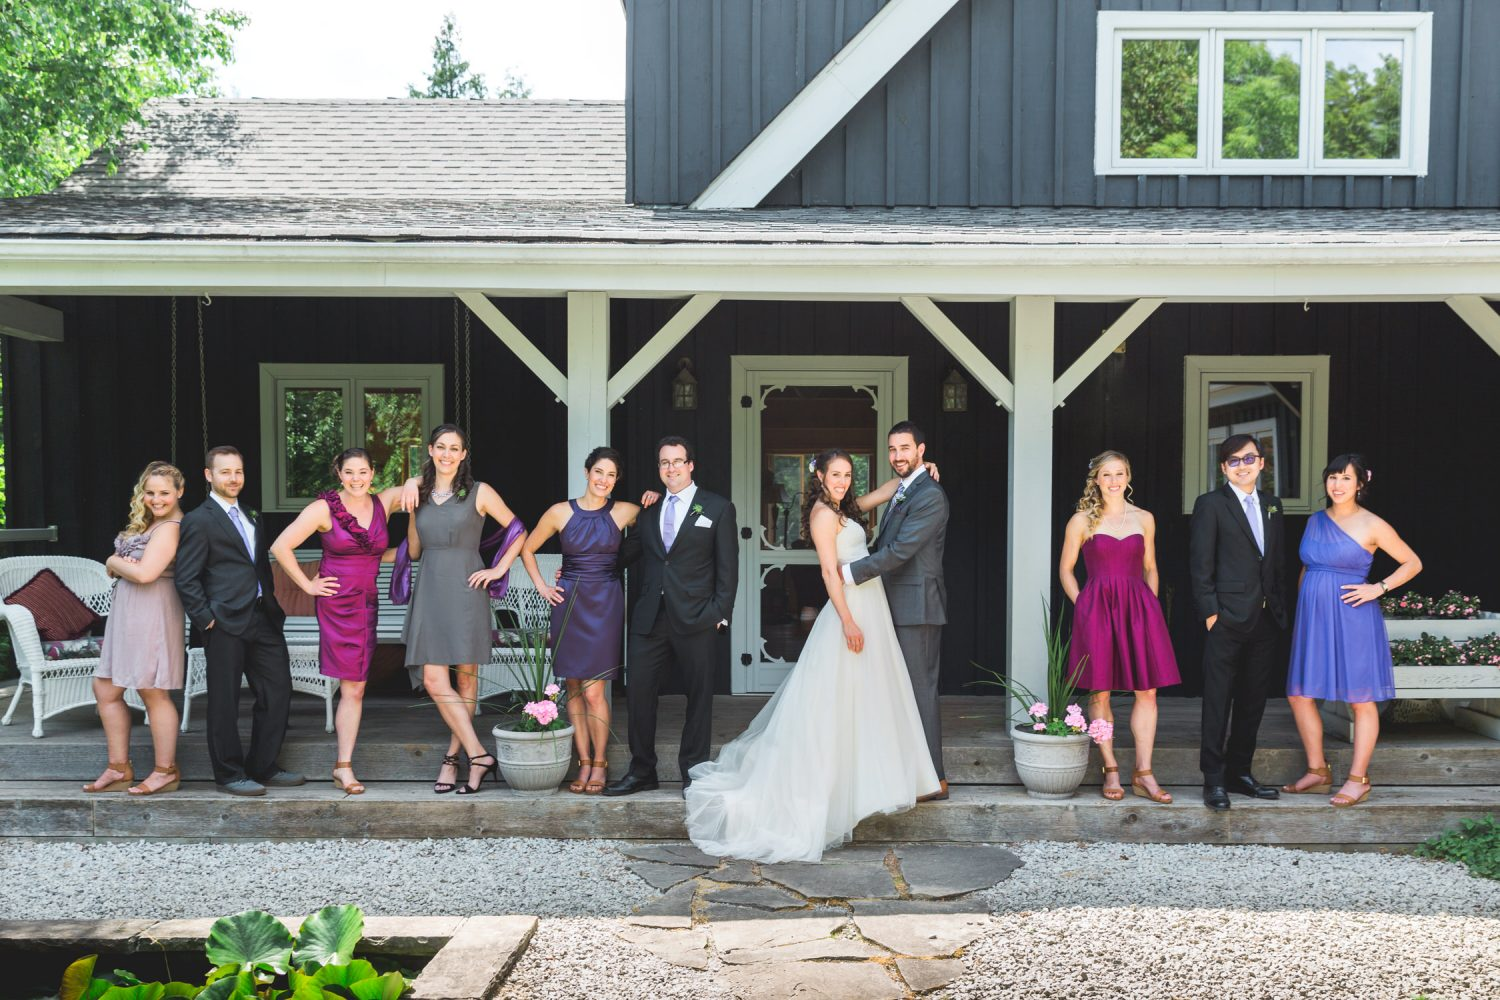 Wedding party GQ pose in front of house